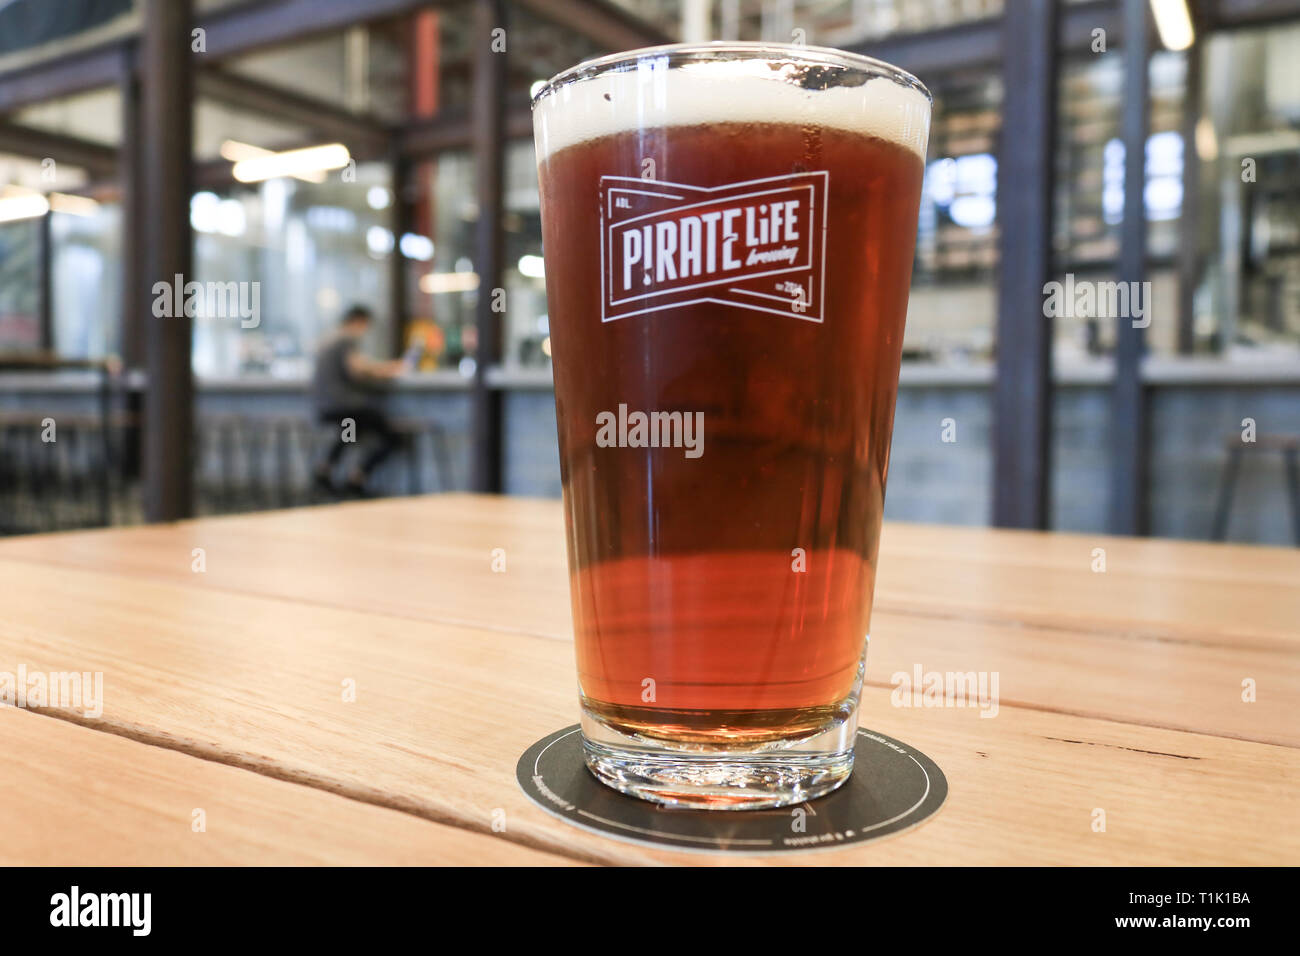 Adelaide, Australia  27th Mar, 2019  The Pirate Life Brewing